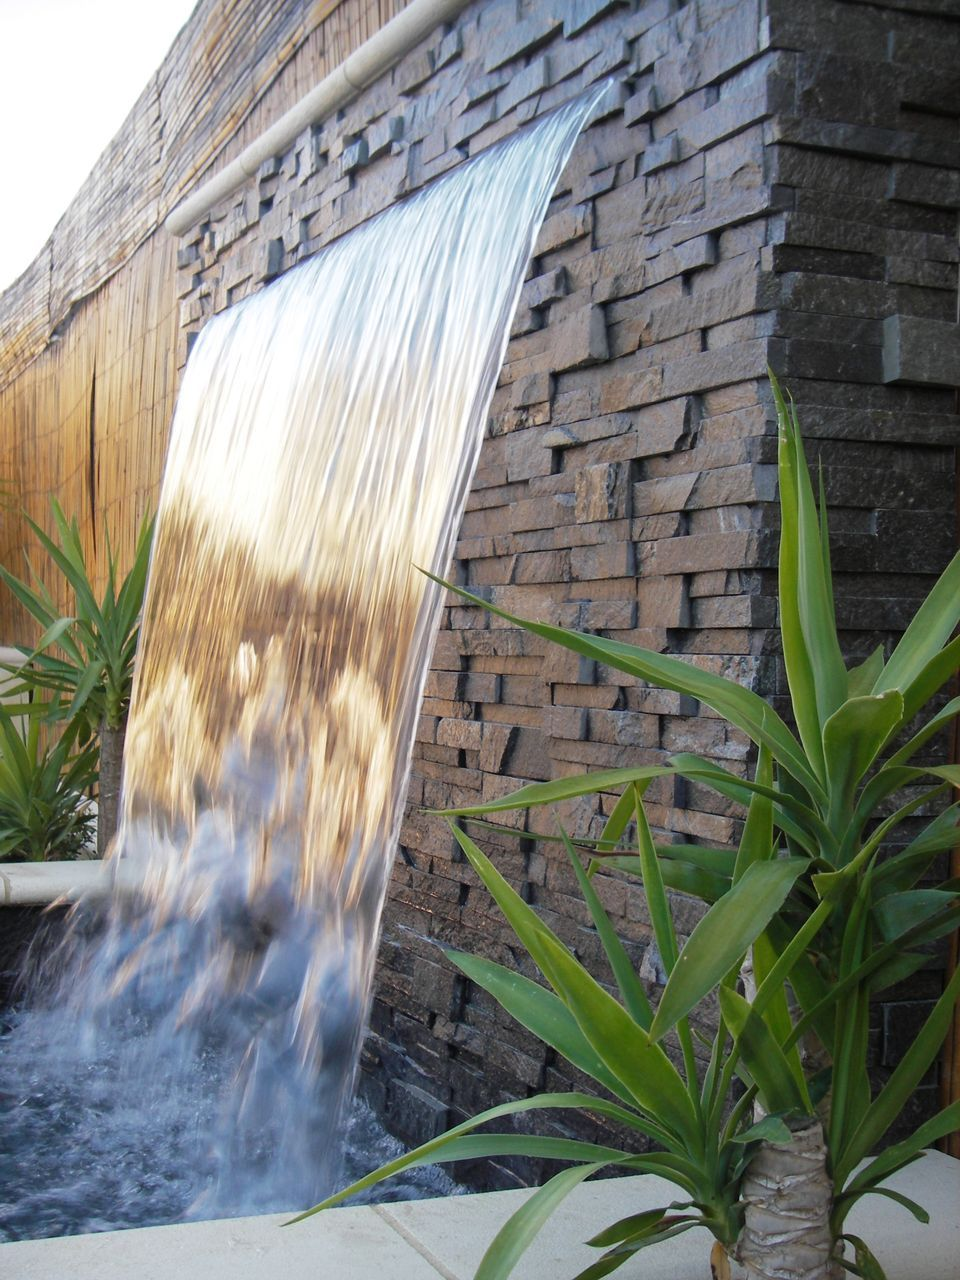 wave water features on 210 garden wall fountains ideas fountains water features in the garden water features 210 garden wall fountains ideas